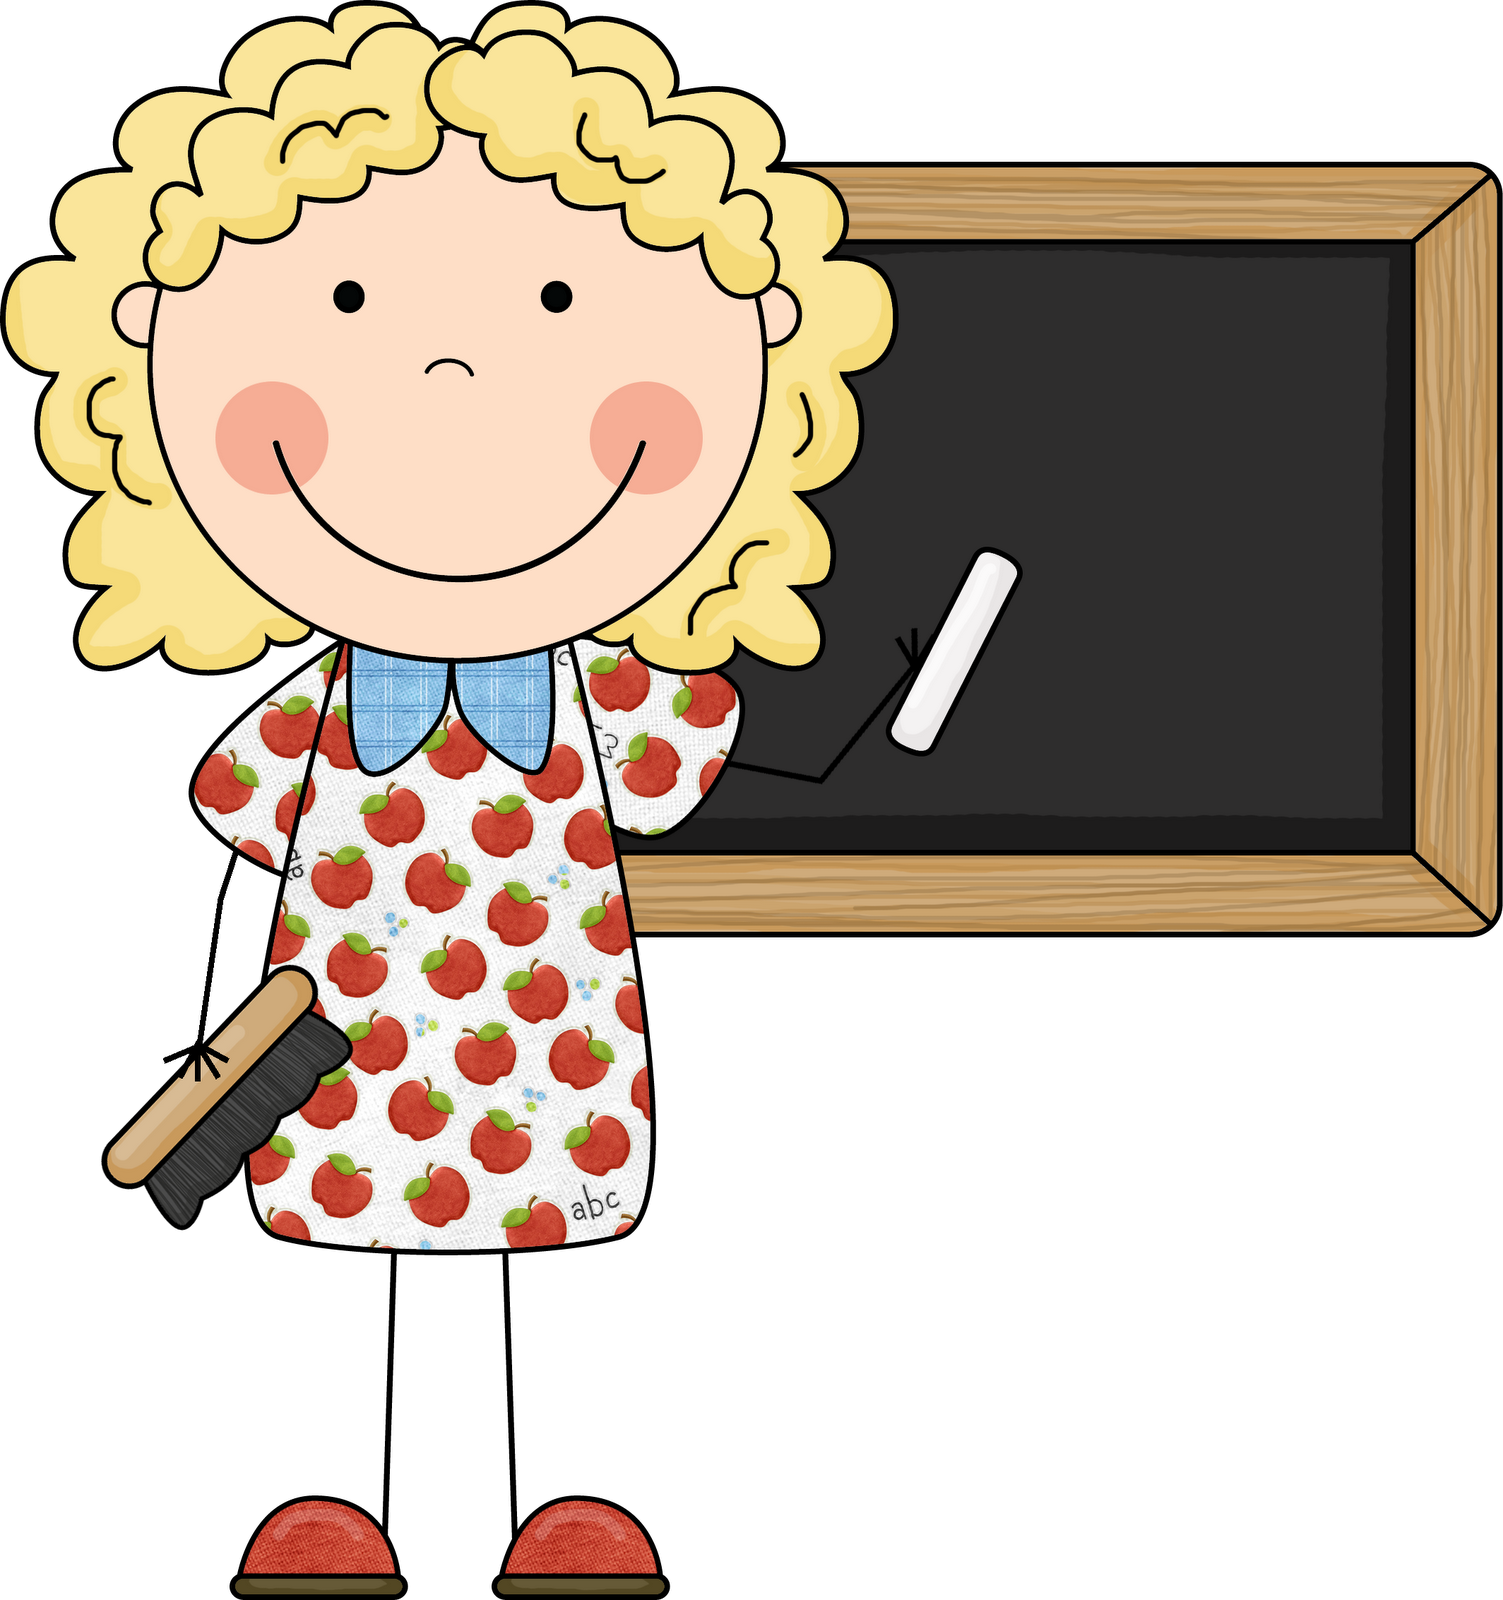 81 Images Of Cute Teacher Clip Art You Can Use These Free Cliparts